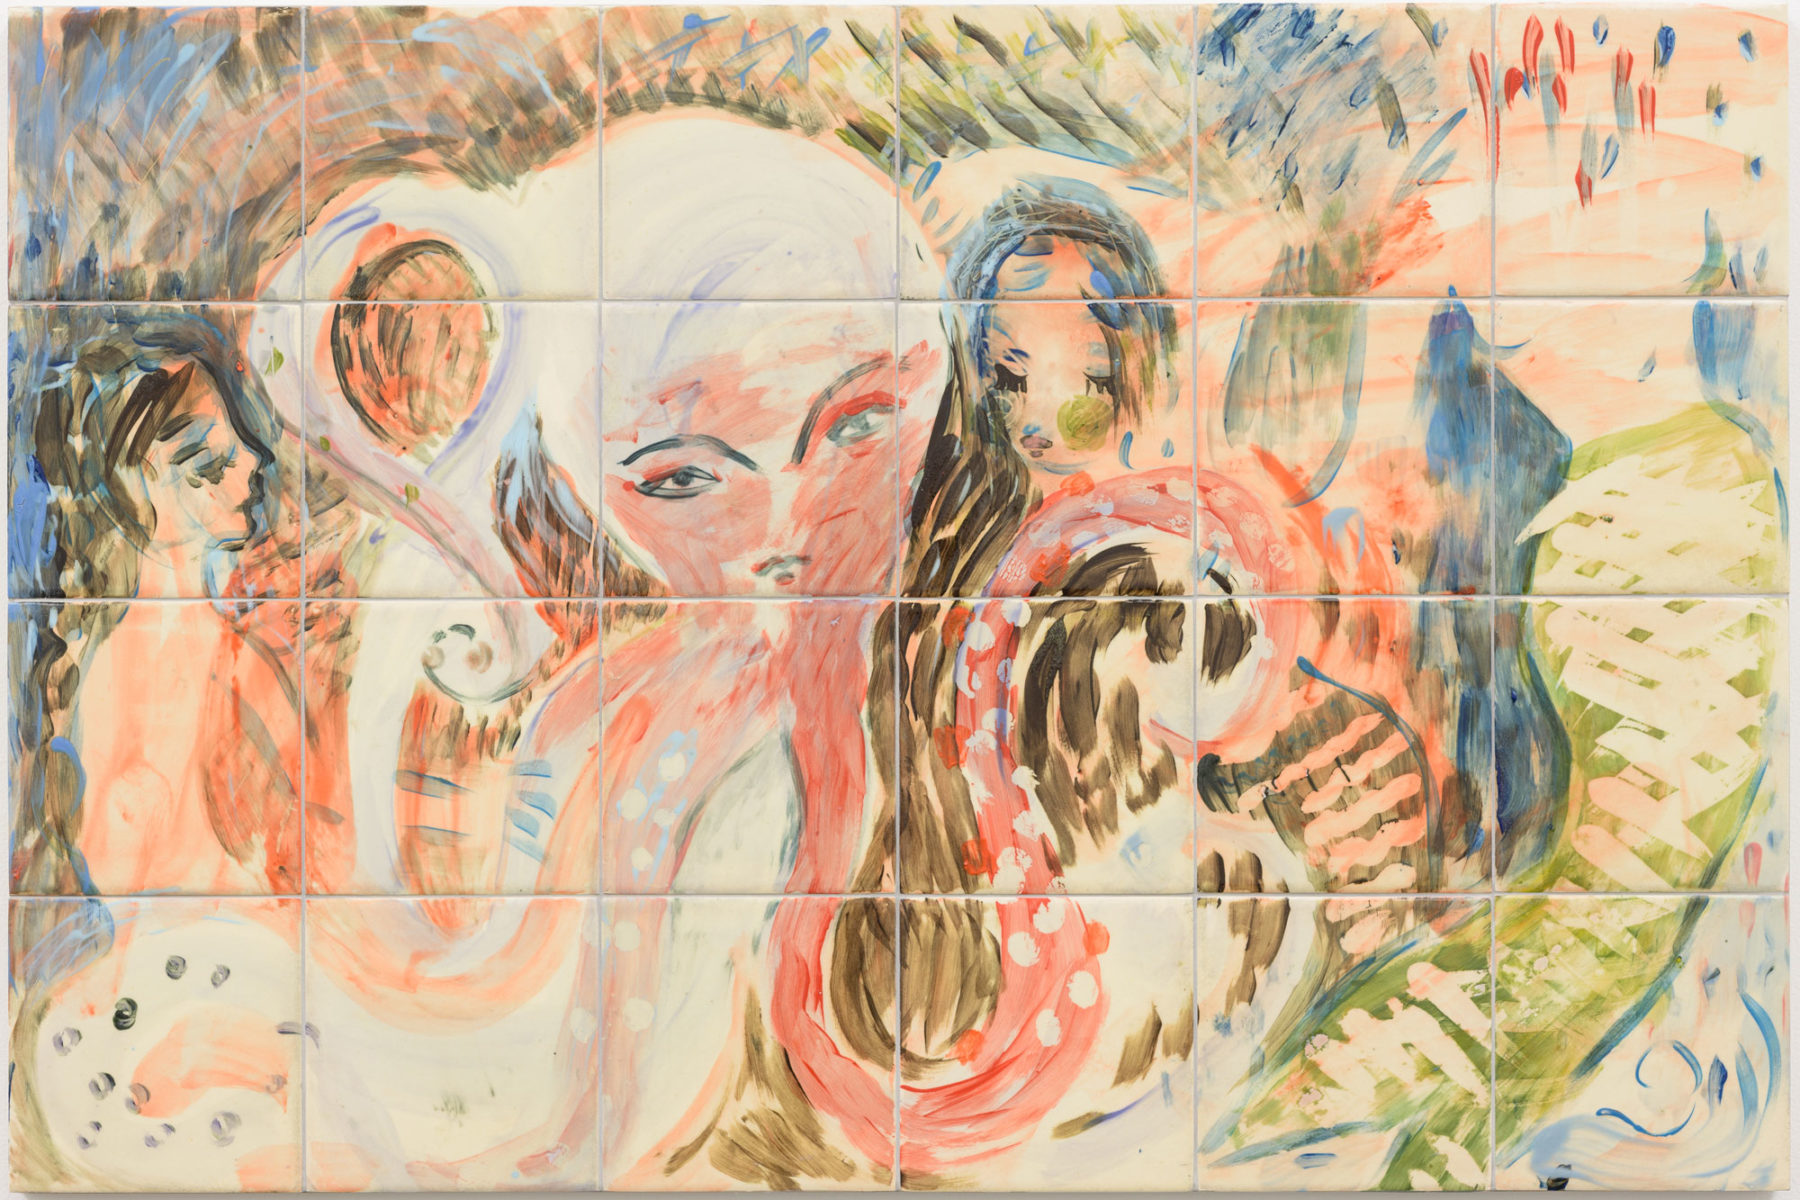 A painting on a grid of tiles, six across and four down. The image uses watery pinks, blues, browns, greens and greys to depict a dreamy and abstract scene of women and sea creatures